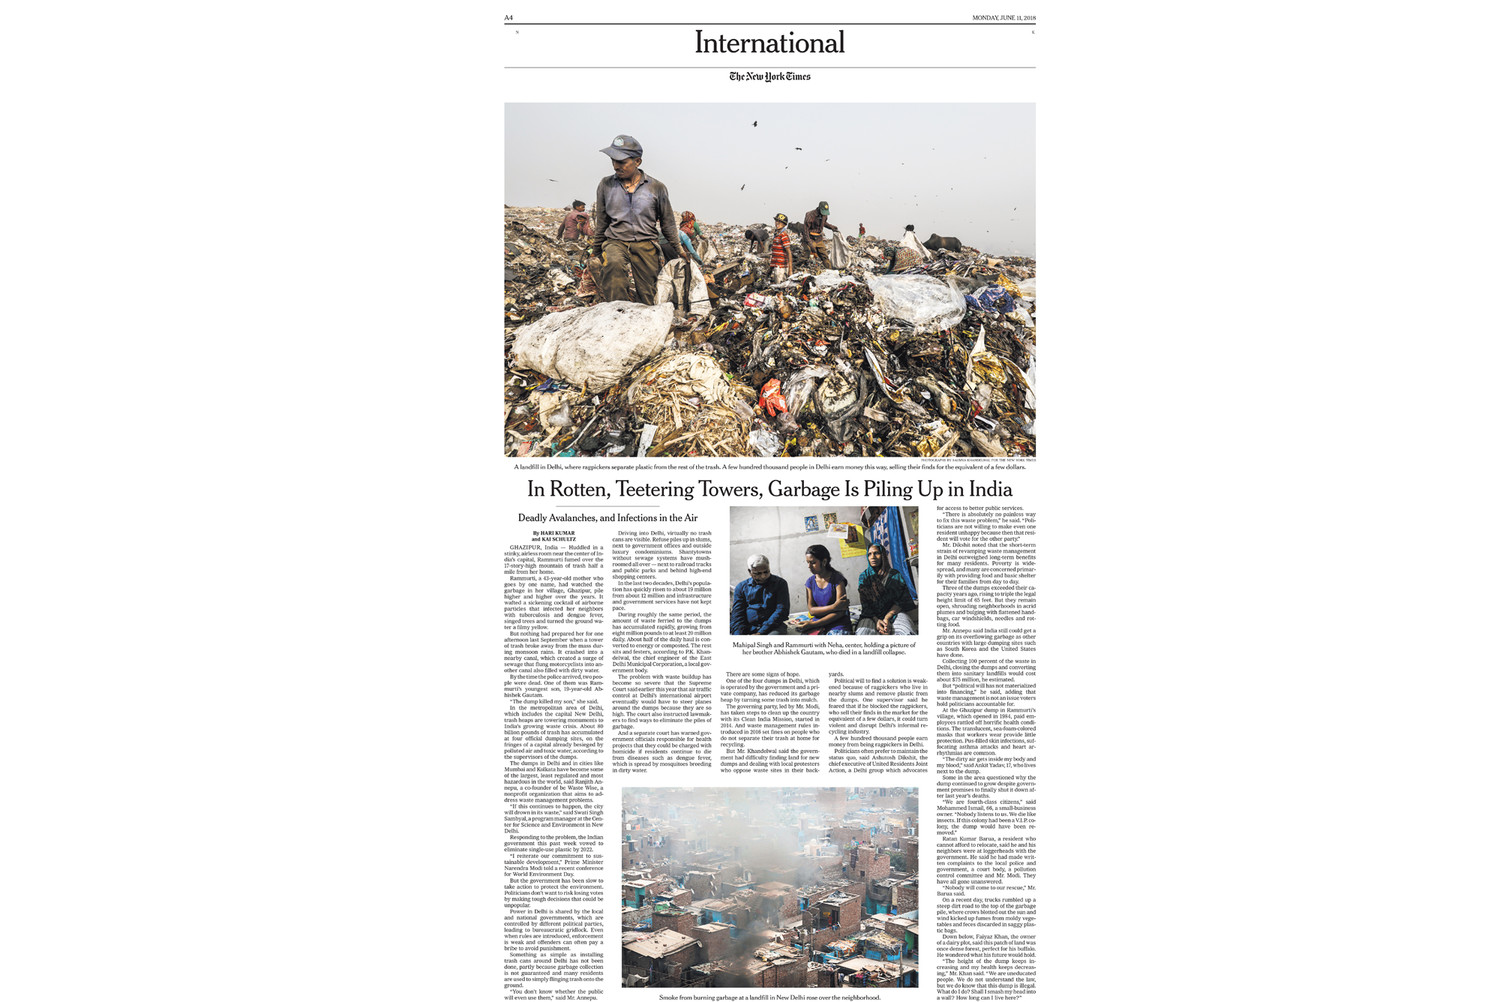 Garbage is piling up in India